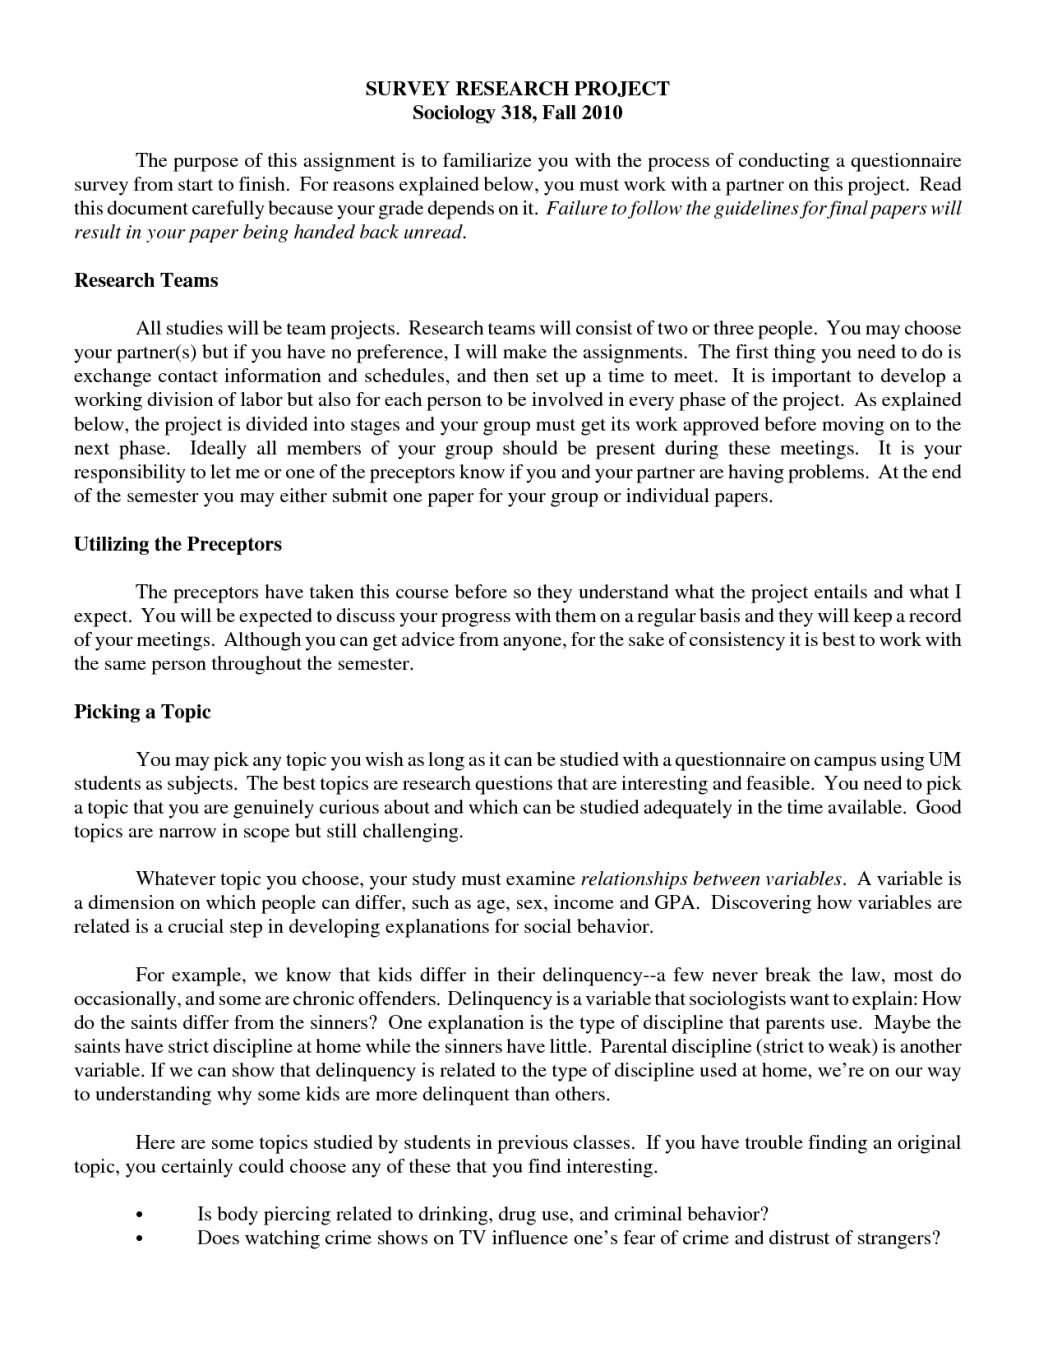 010 Good Hooks For Essaysmples Of How To Write Hook Research Writing Narrative Bcl12 Typesmple Comparison High School Expository Argumentative 1048x1356 Essay Excellent Essays Examples College Full